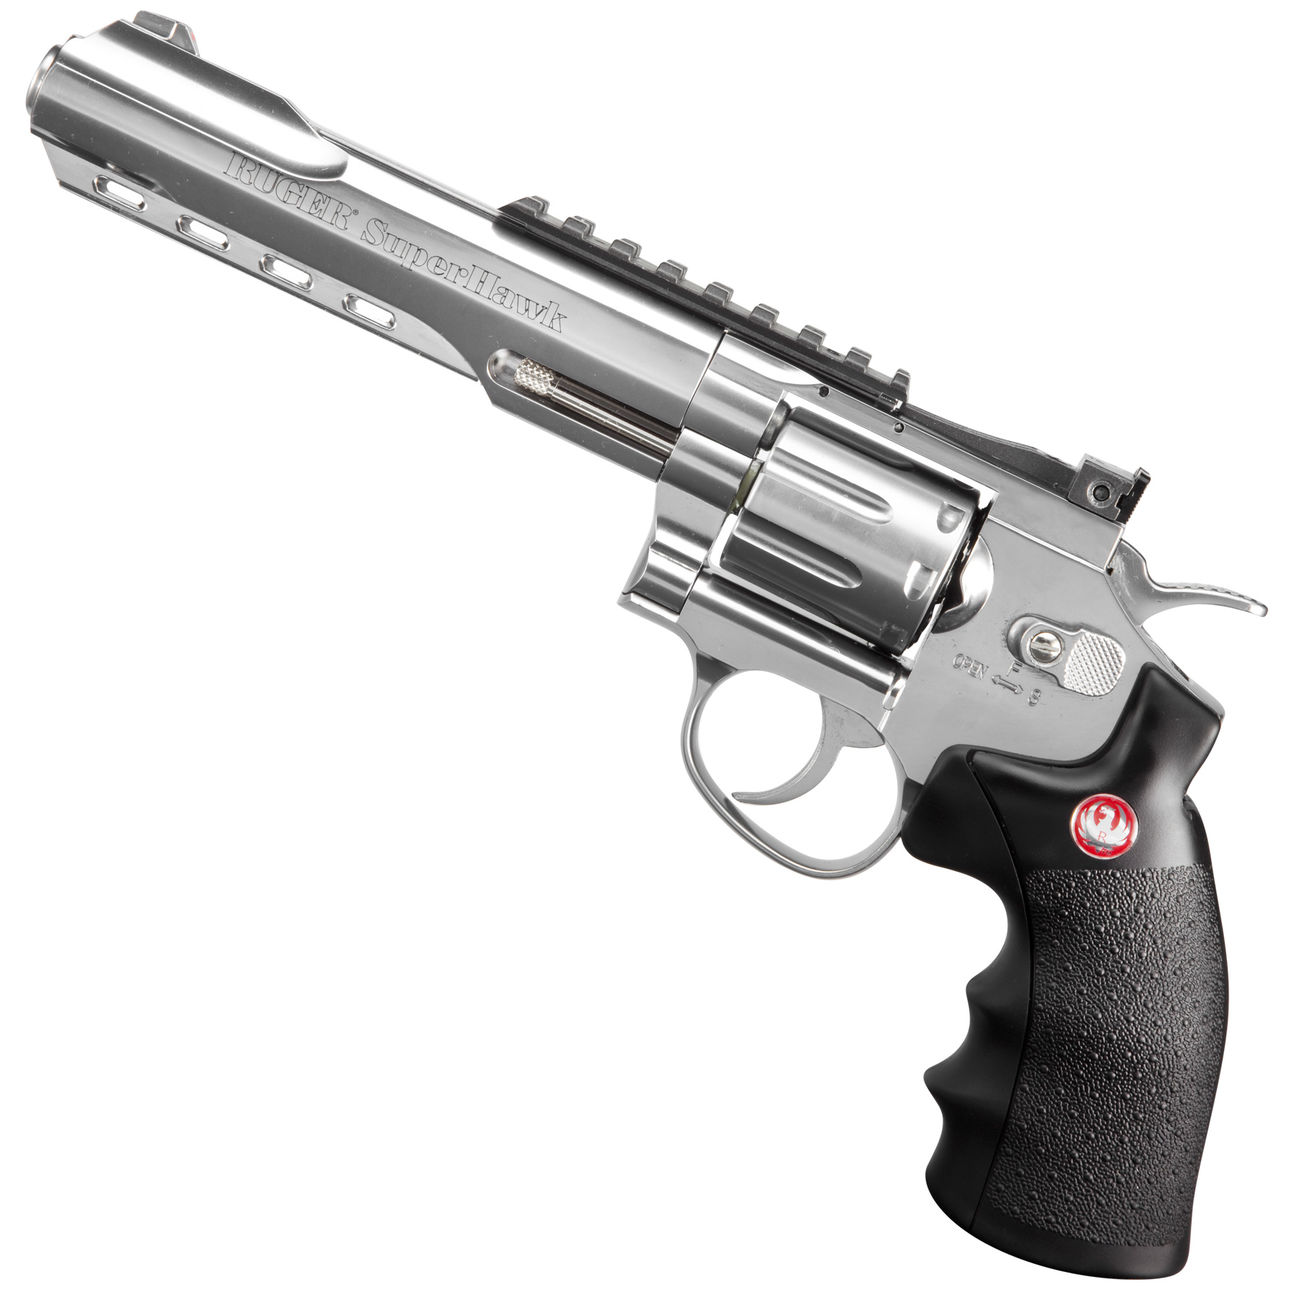 Ruger Super Hawk 6 Zoll 6mm BB CO2 Revolver chrom 0